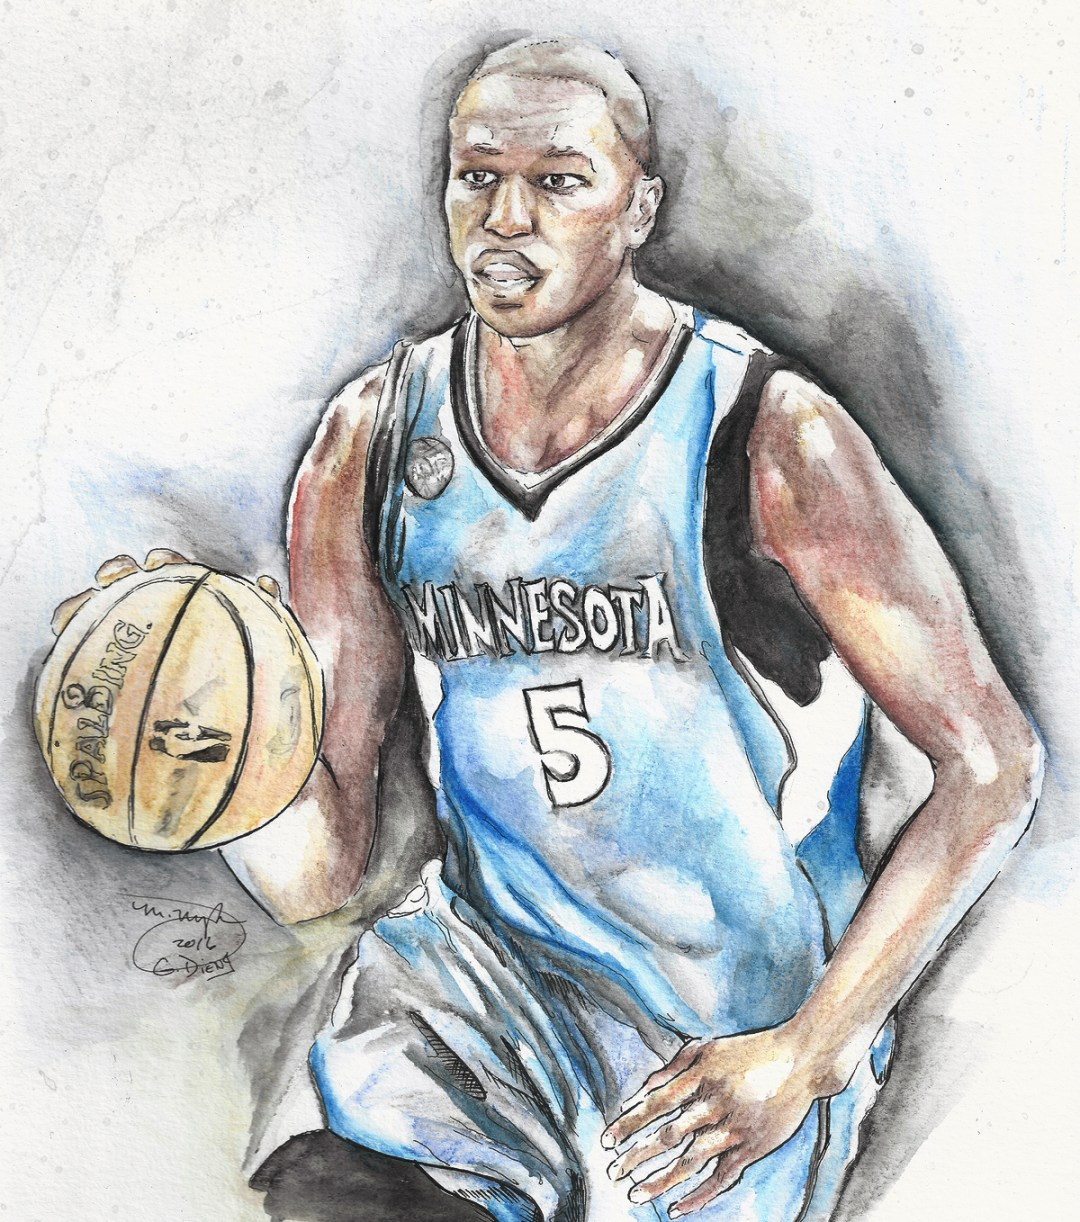 Watercolor painting of Gorgui Dieng